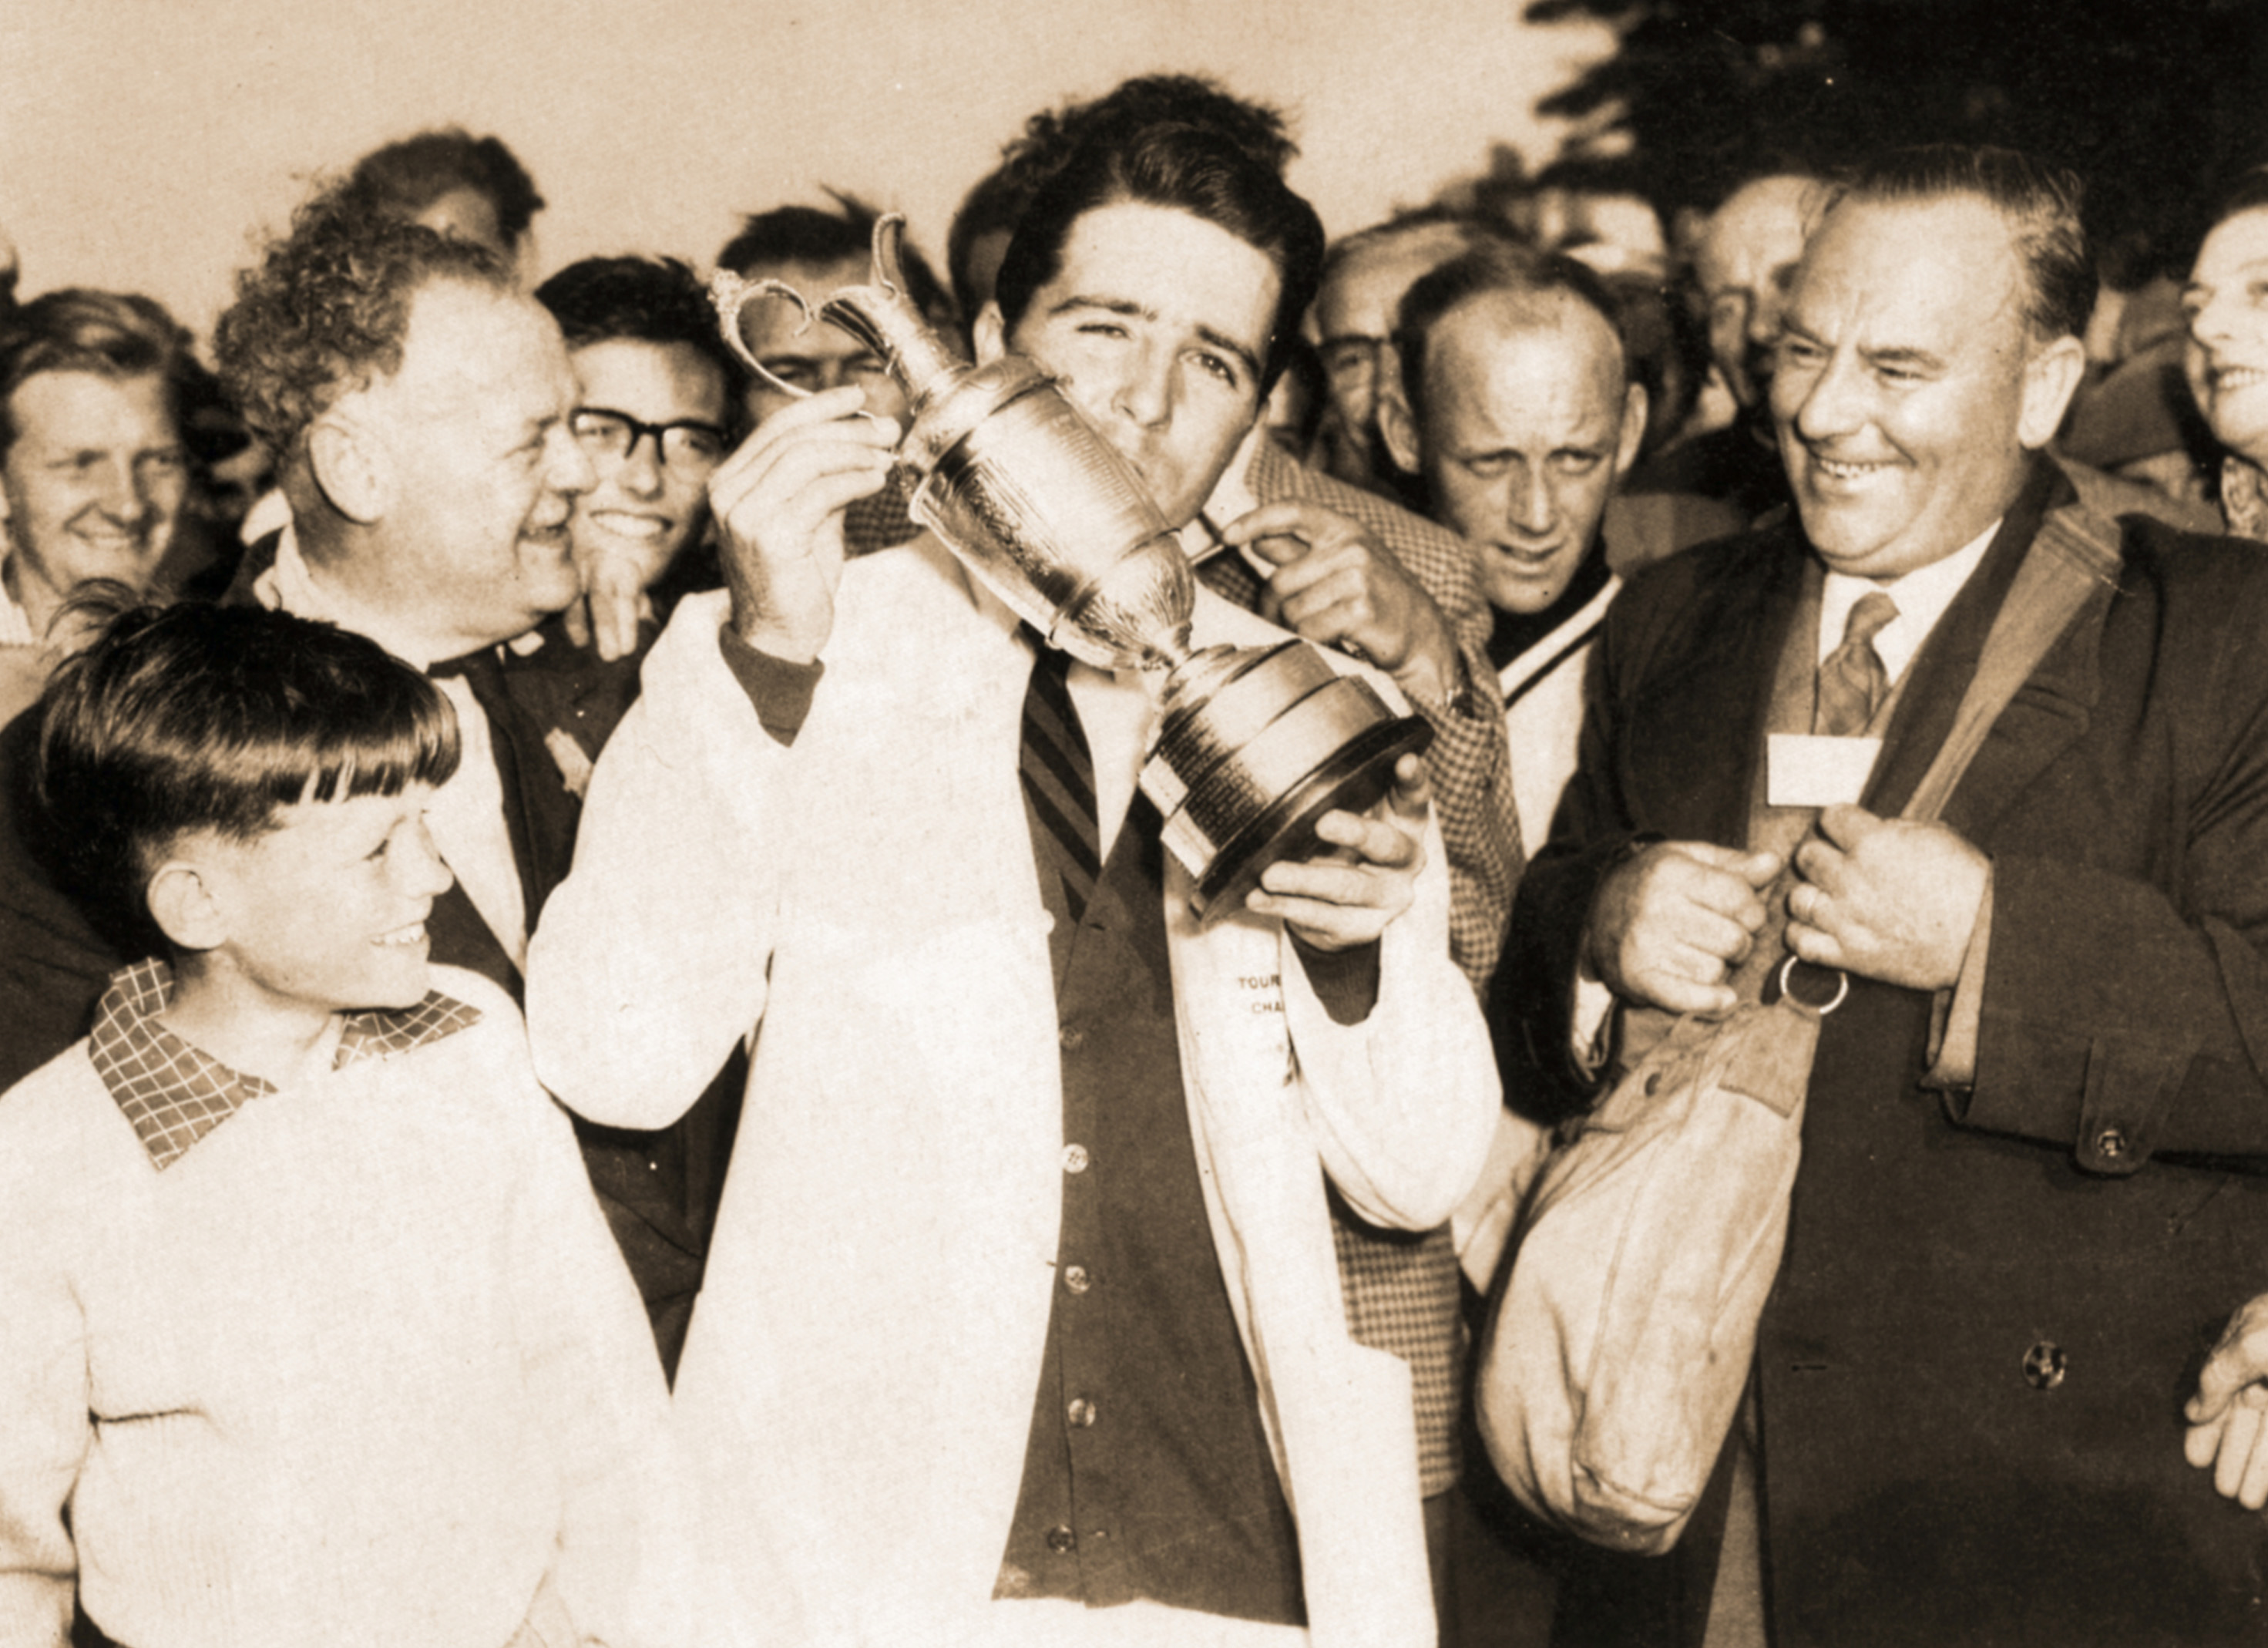 Gary Player won his first Claret Jug when the Open Championship was hosted at Muirfield in 1959.